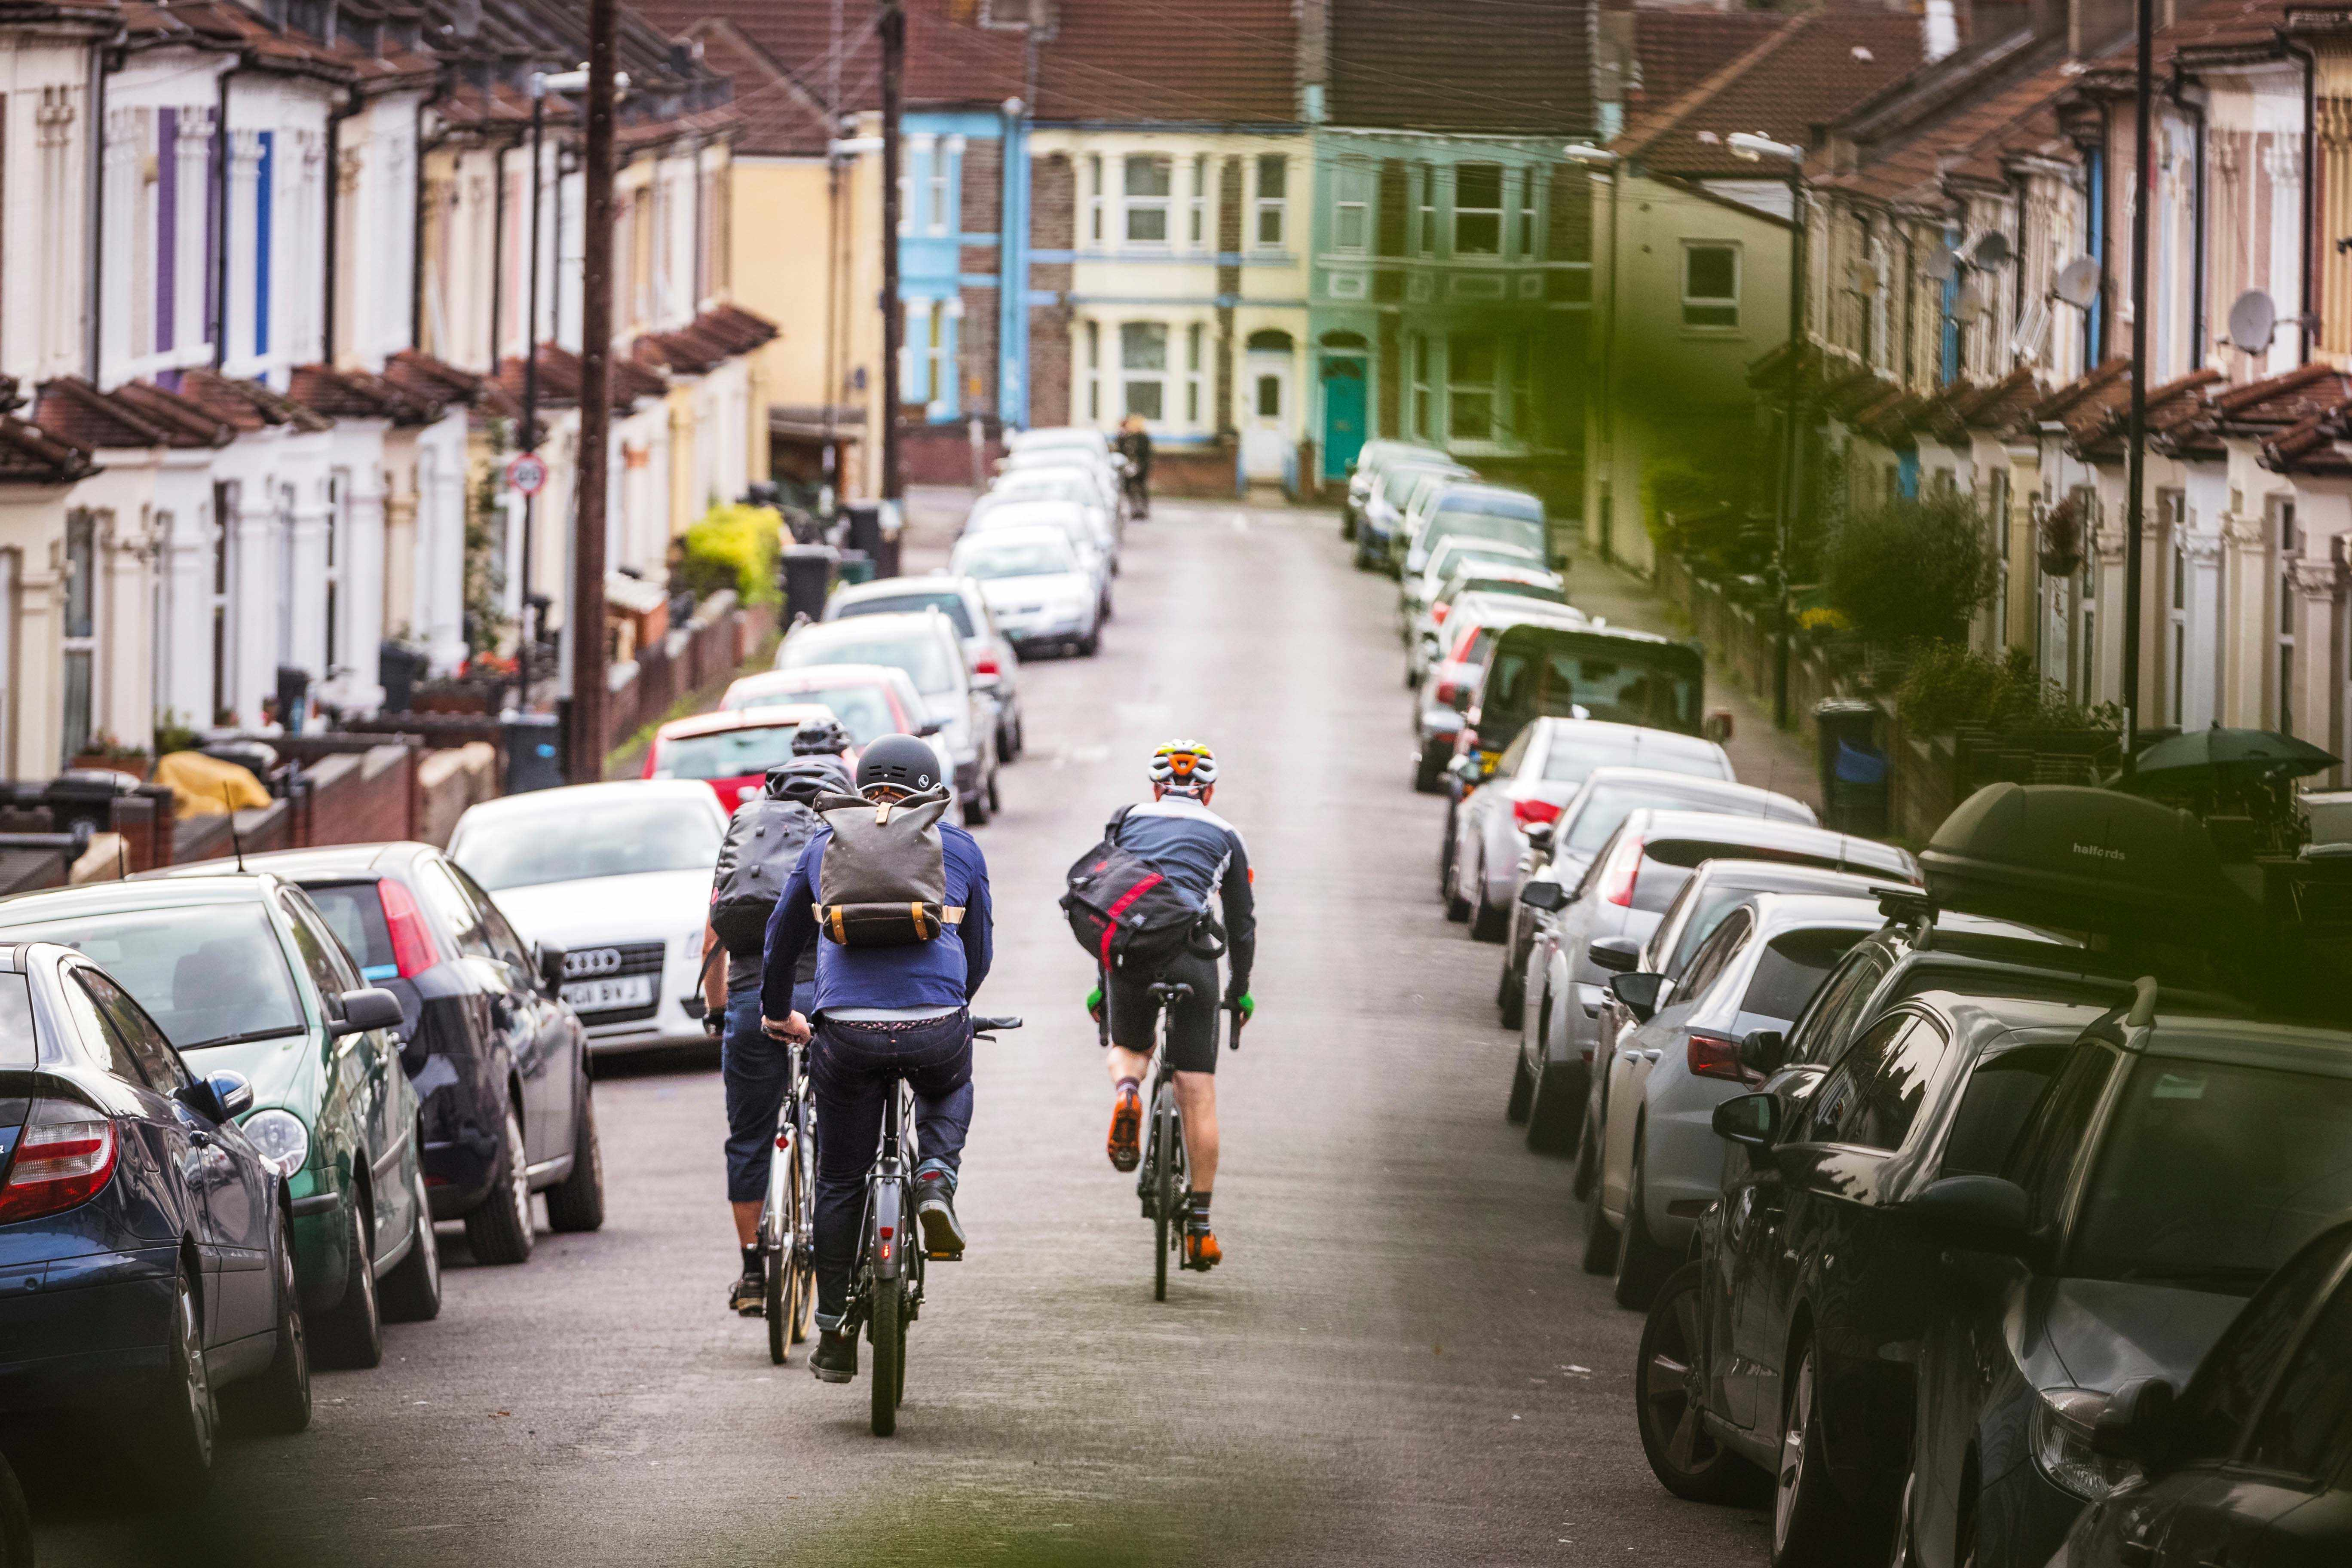 Four commuters cycling along residential street